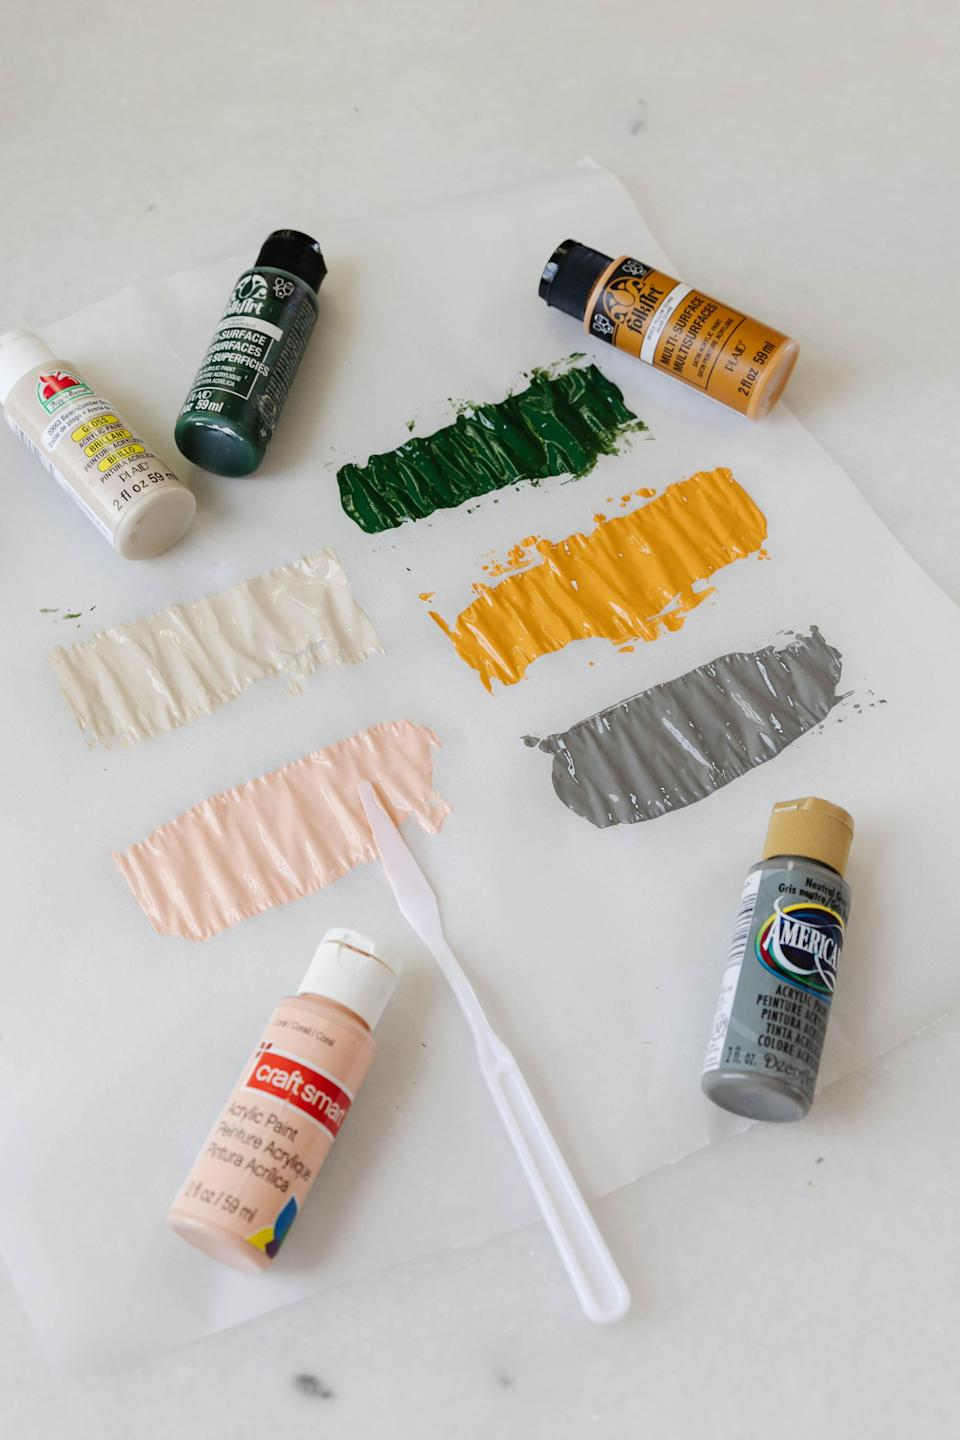 Start by painting on wax paper.